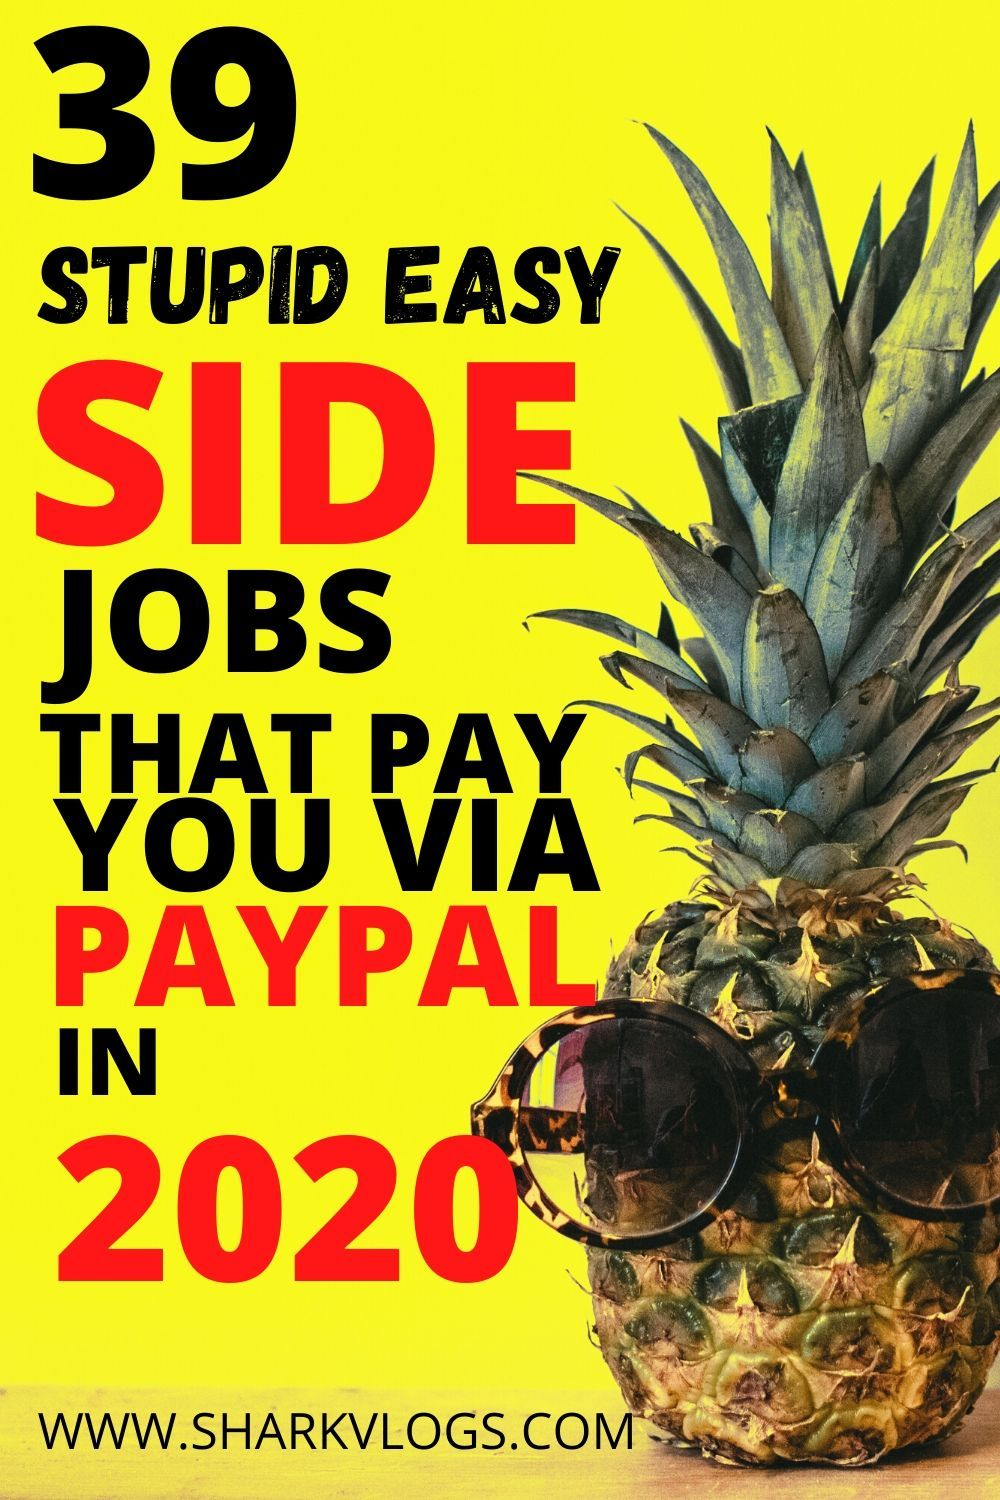 39 stupid easy side jobs that pay you via Paypal in 2020